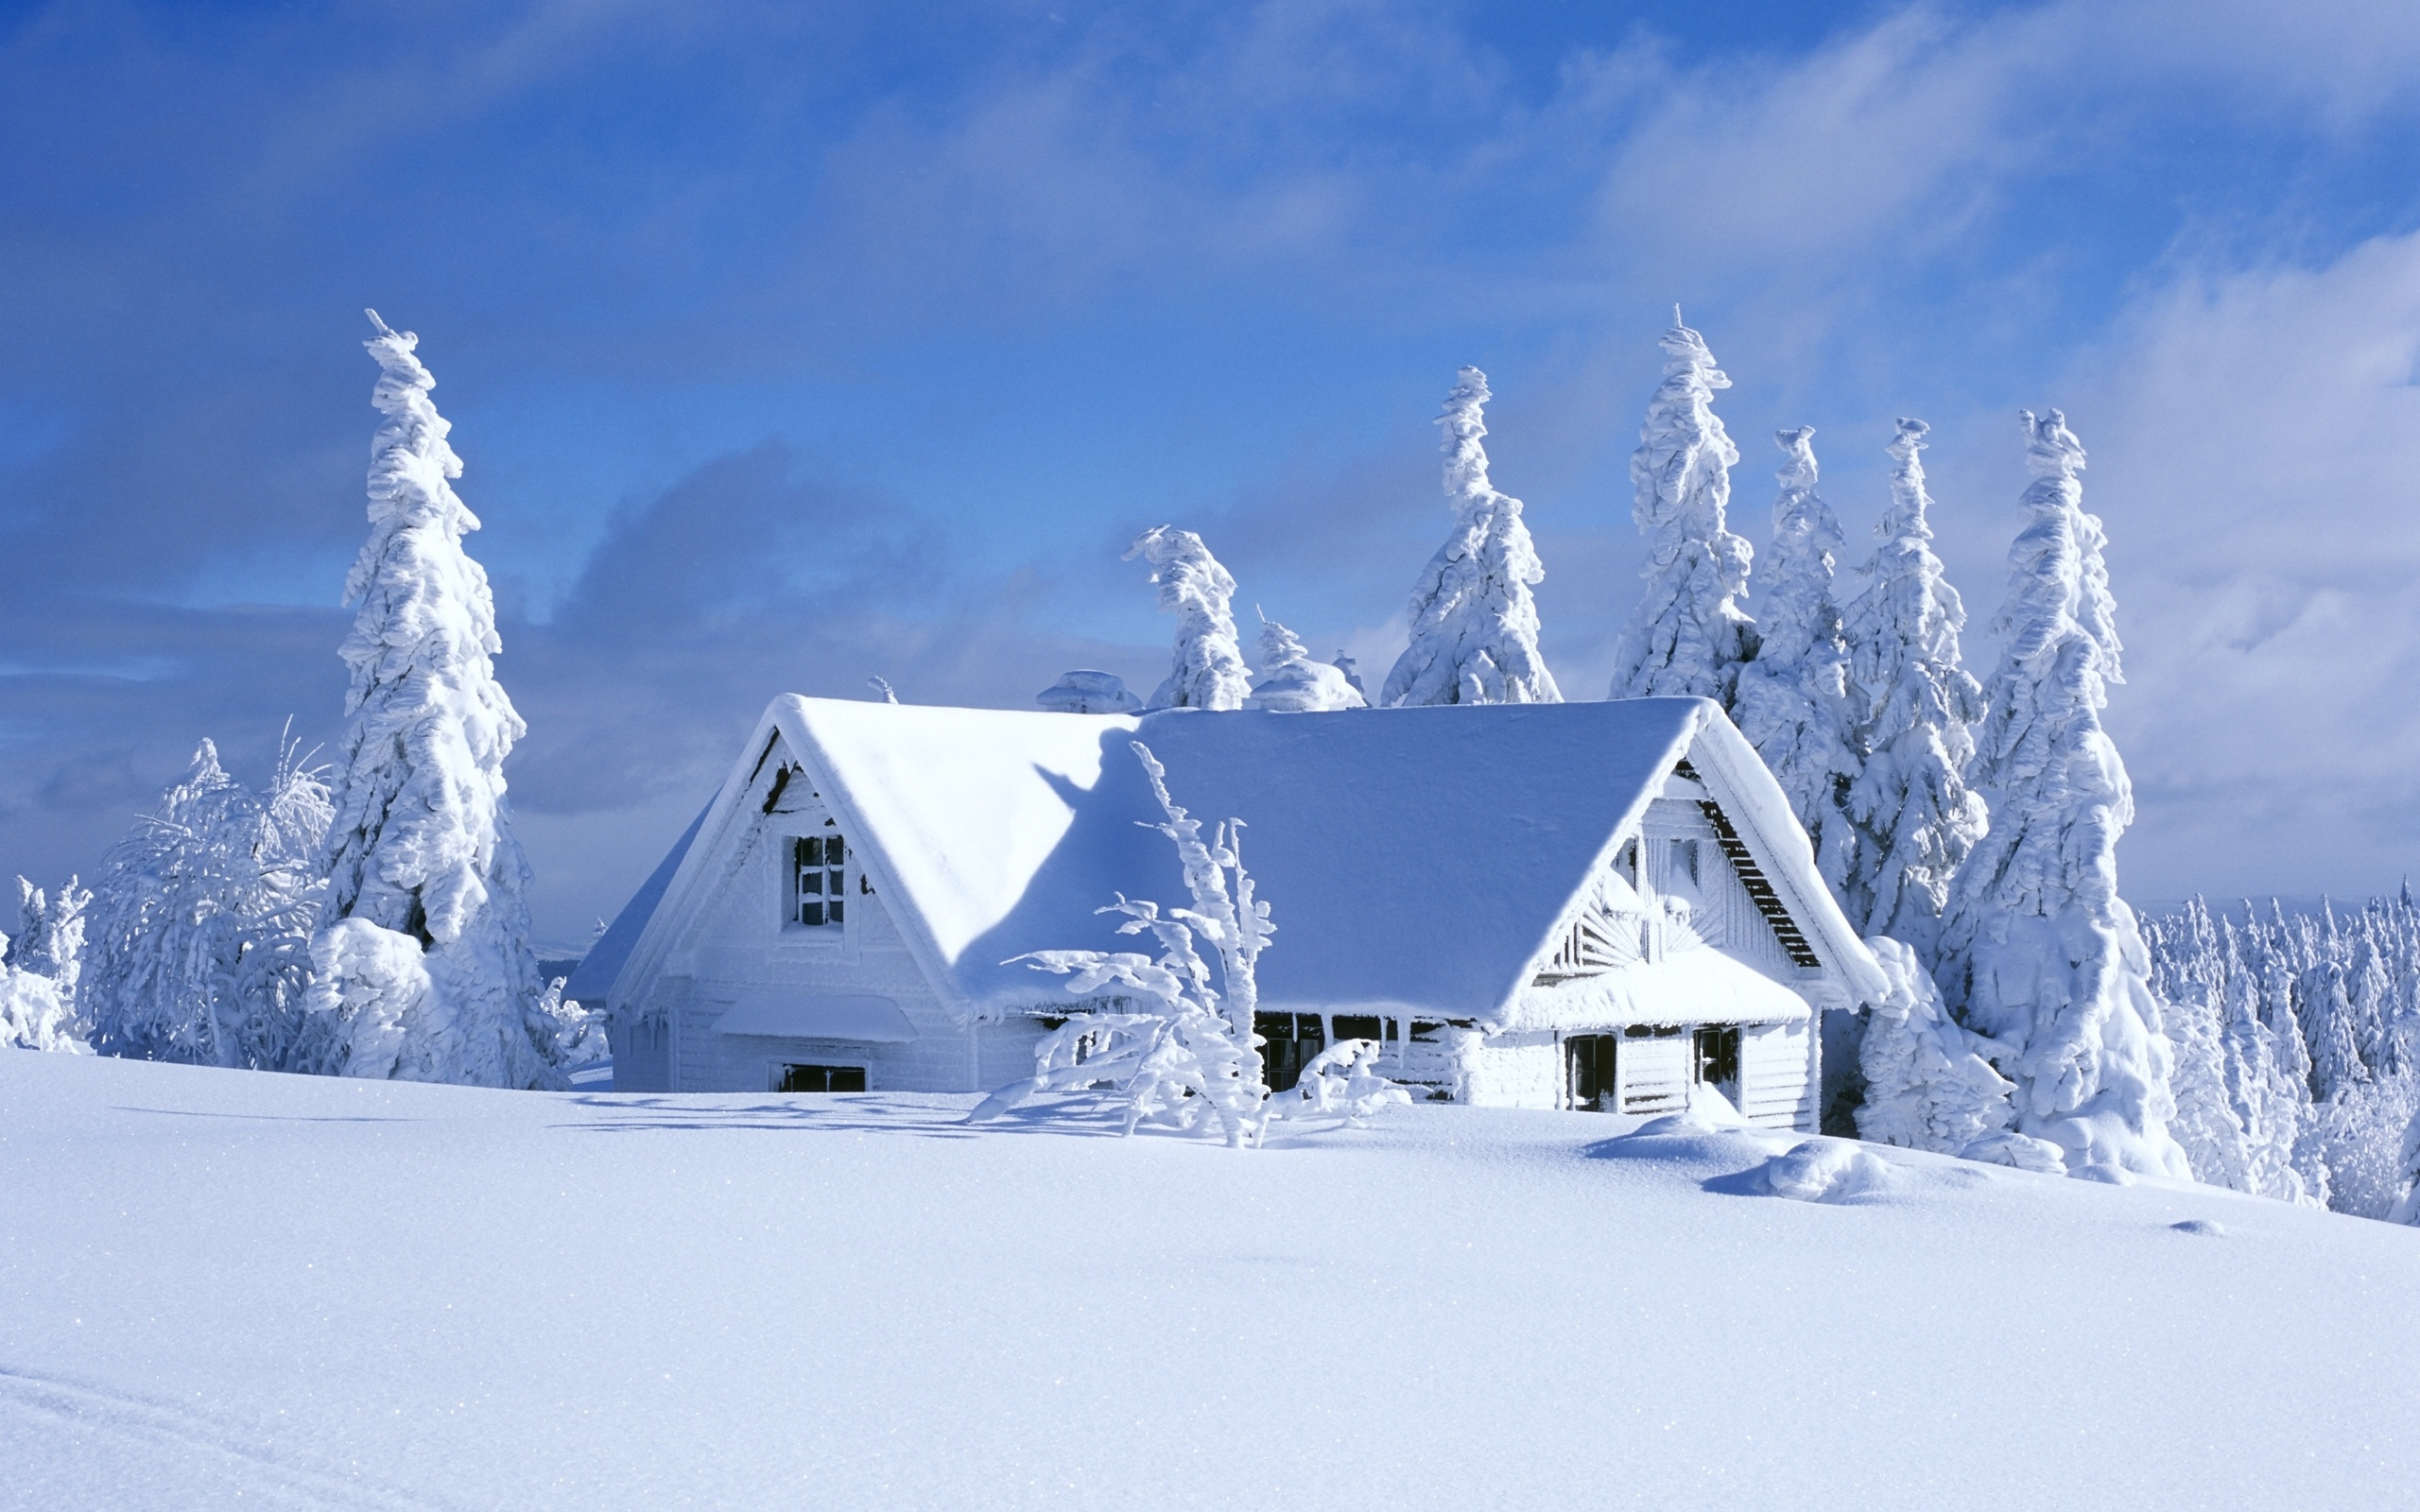 House Covered In Snow wallpaper High Quality WallpapersWallpaper 2560x1600